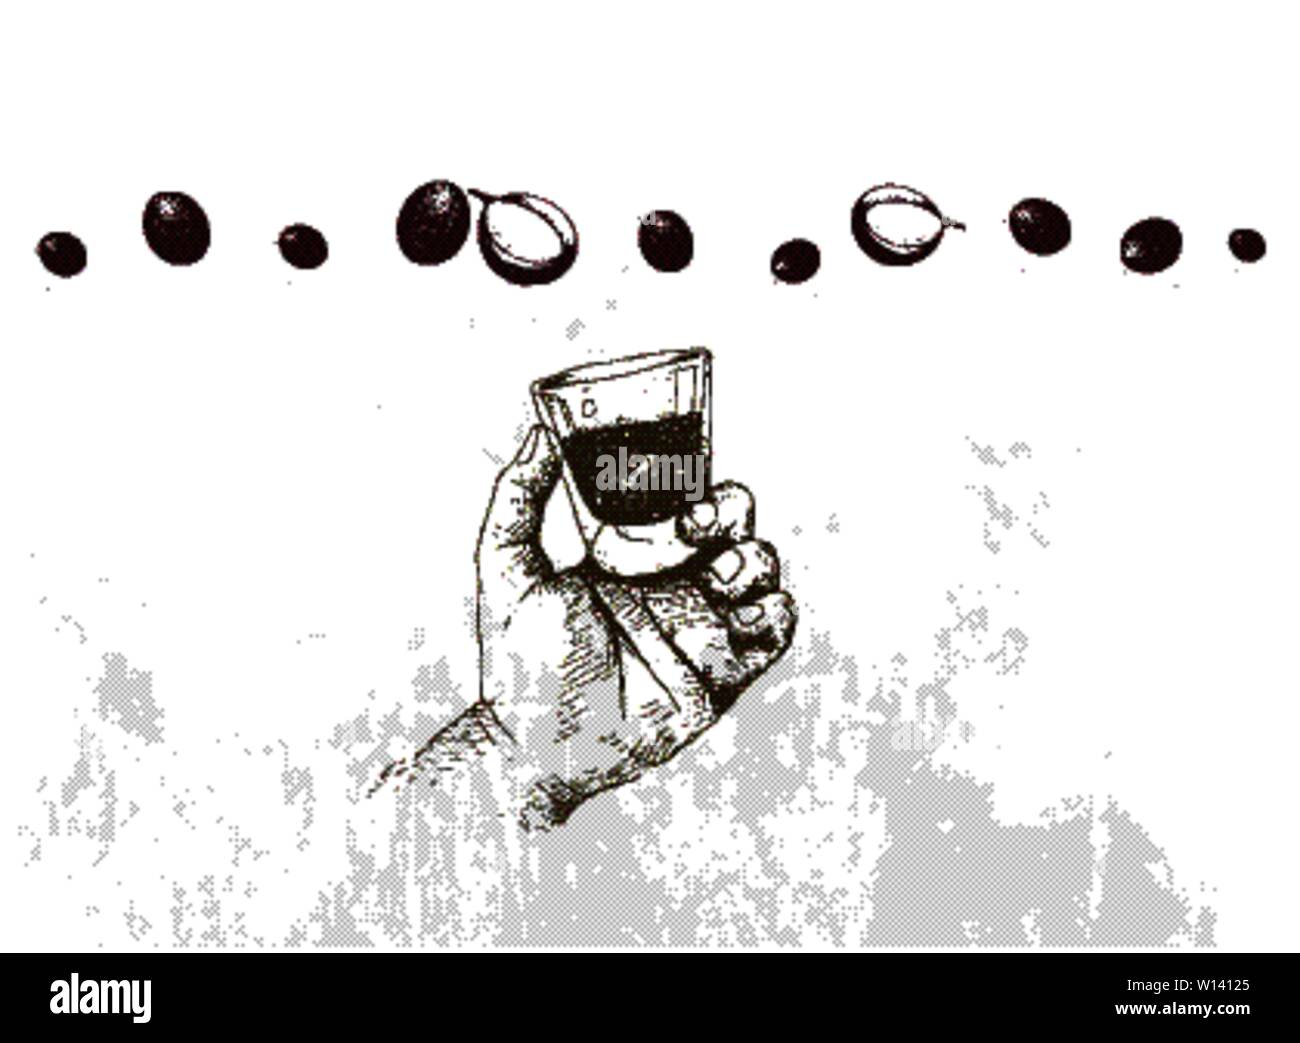 The Flavor of Coffee, Illustration Hand Drawn Sketch of Hand Holding A Shot of Espresso with Coffee Cherries. Stock Vector